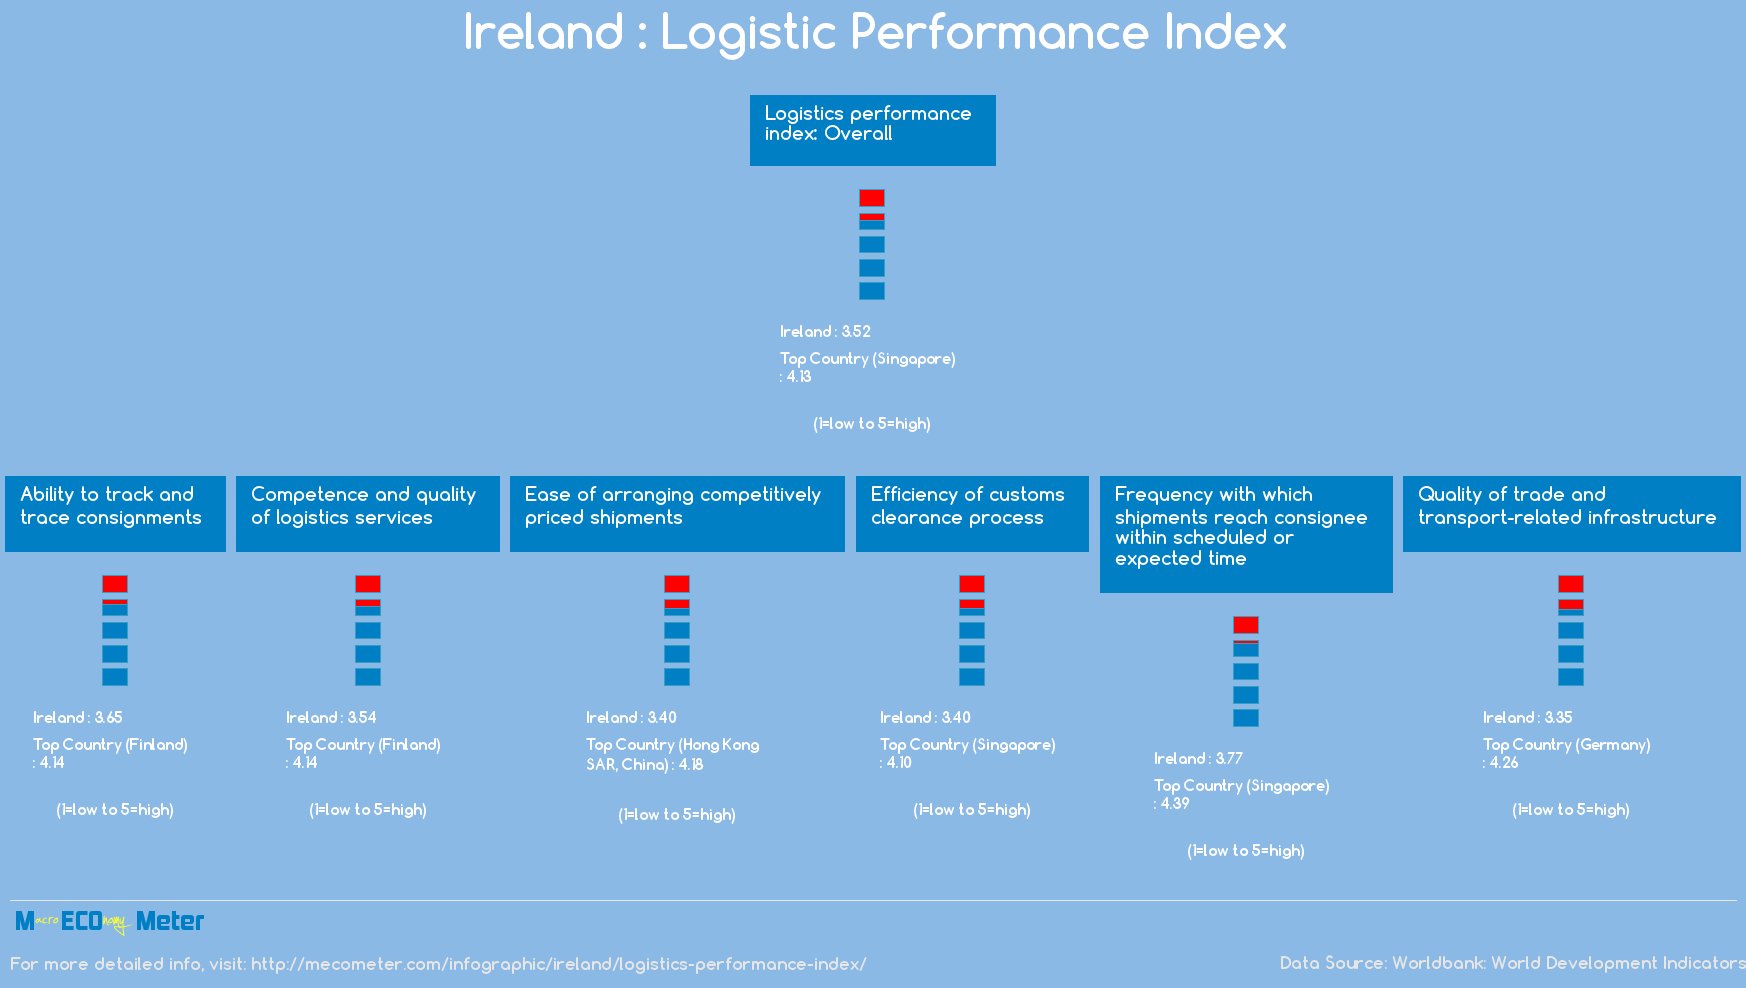 Ireland : Logistic Performance Index